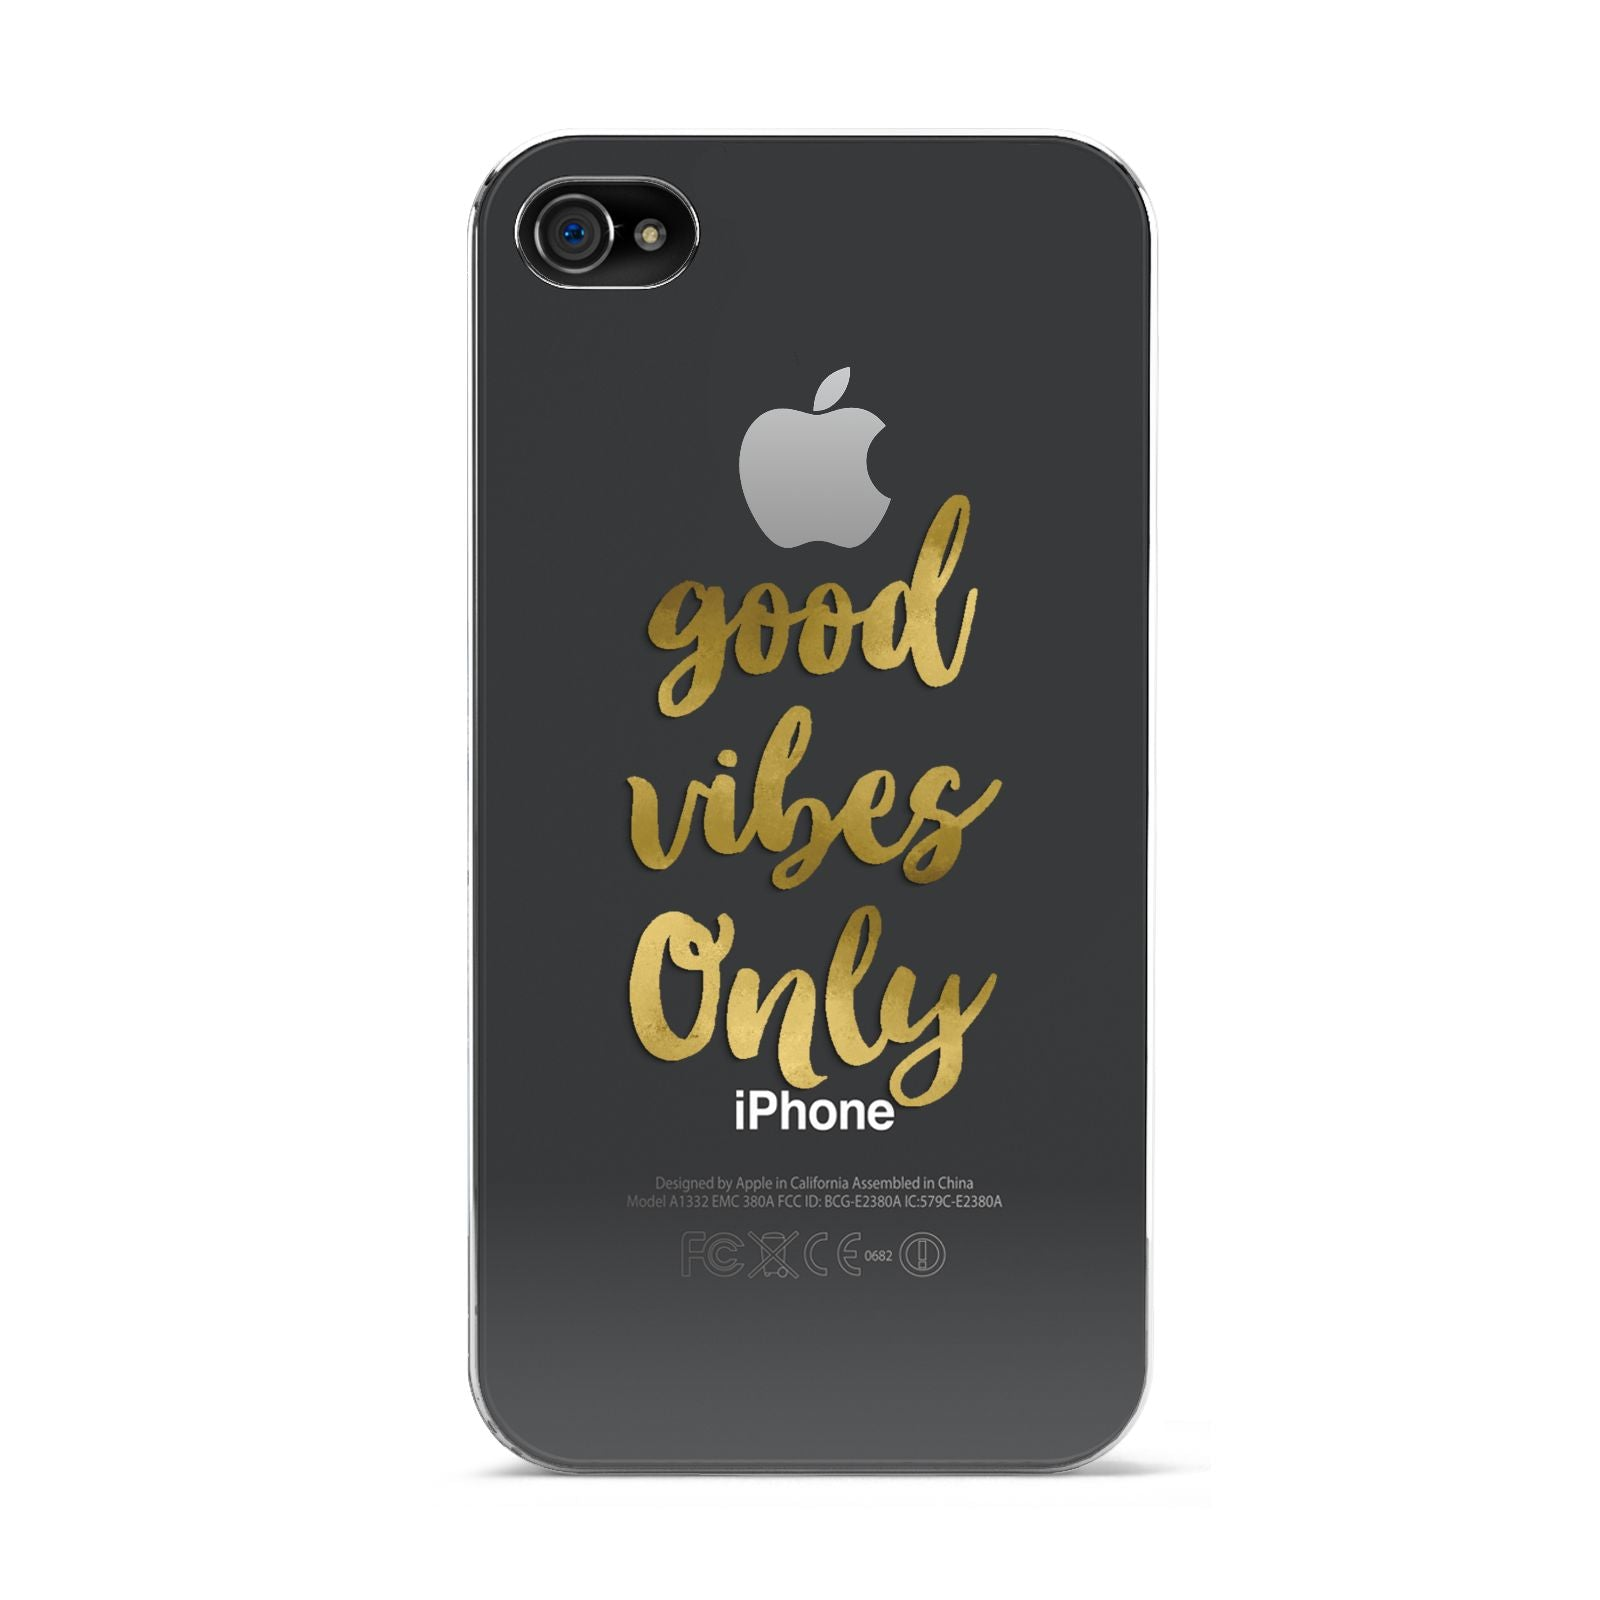 Good Vibes Only Gold Foiled Apple iPhone 4s Case